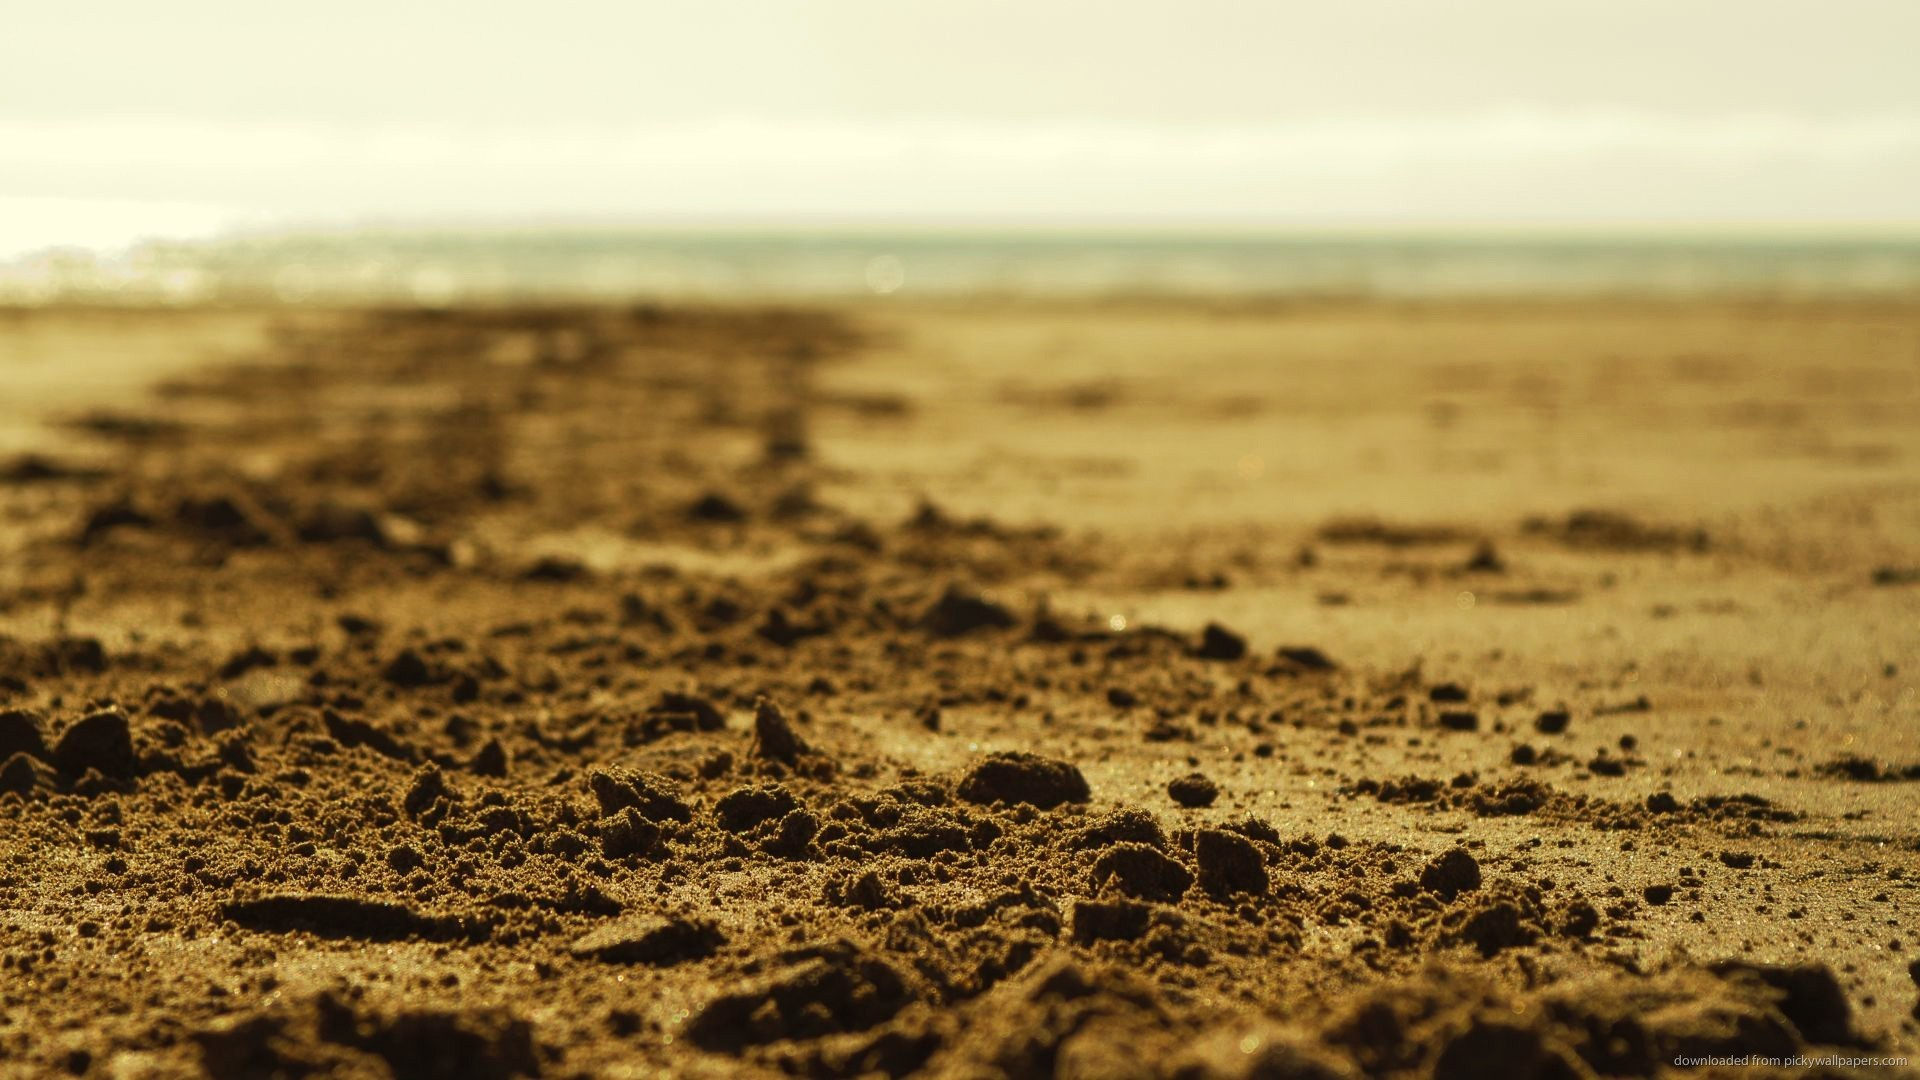 Beach Sand Depth Of Field Wallpaper Picture For iPhone Blackberry 1920x1080